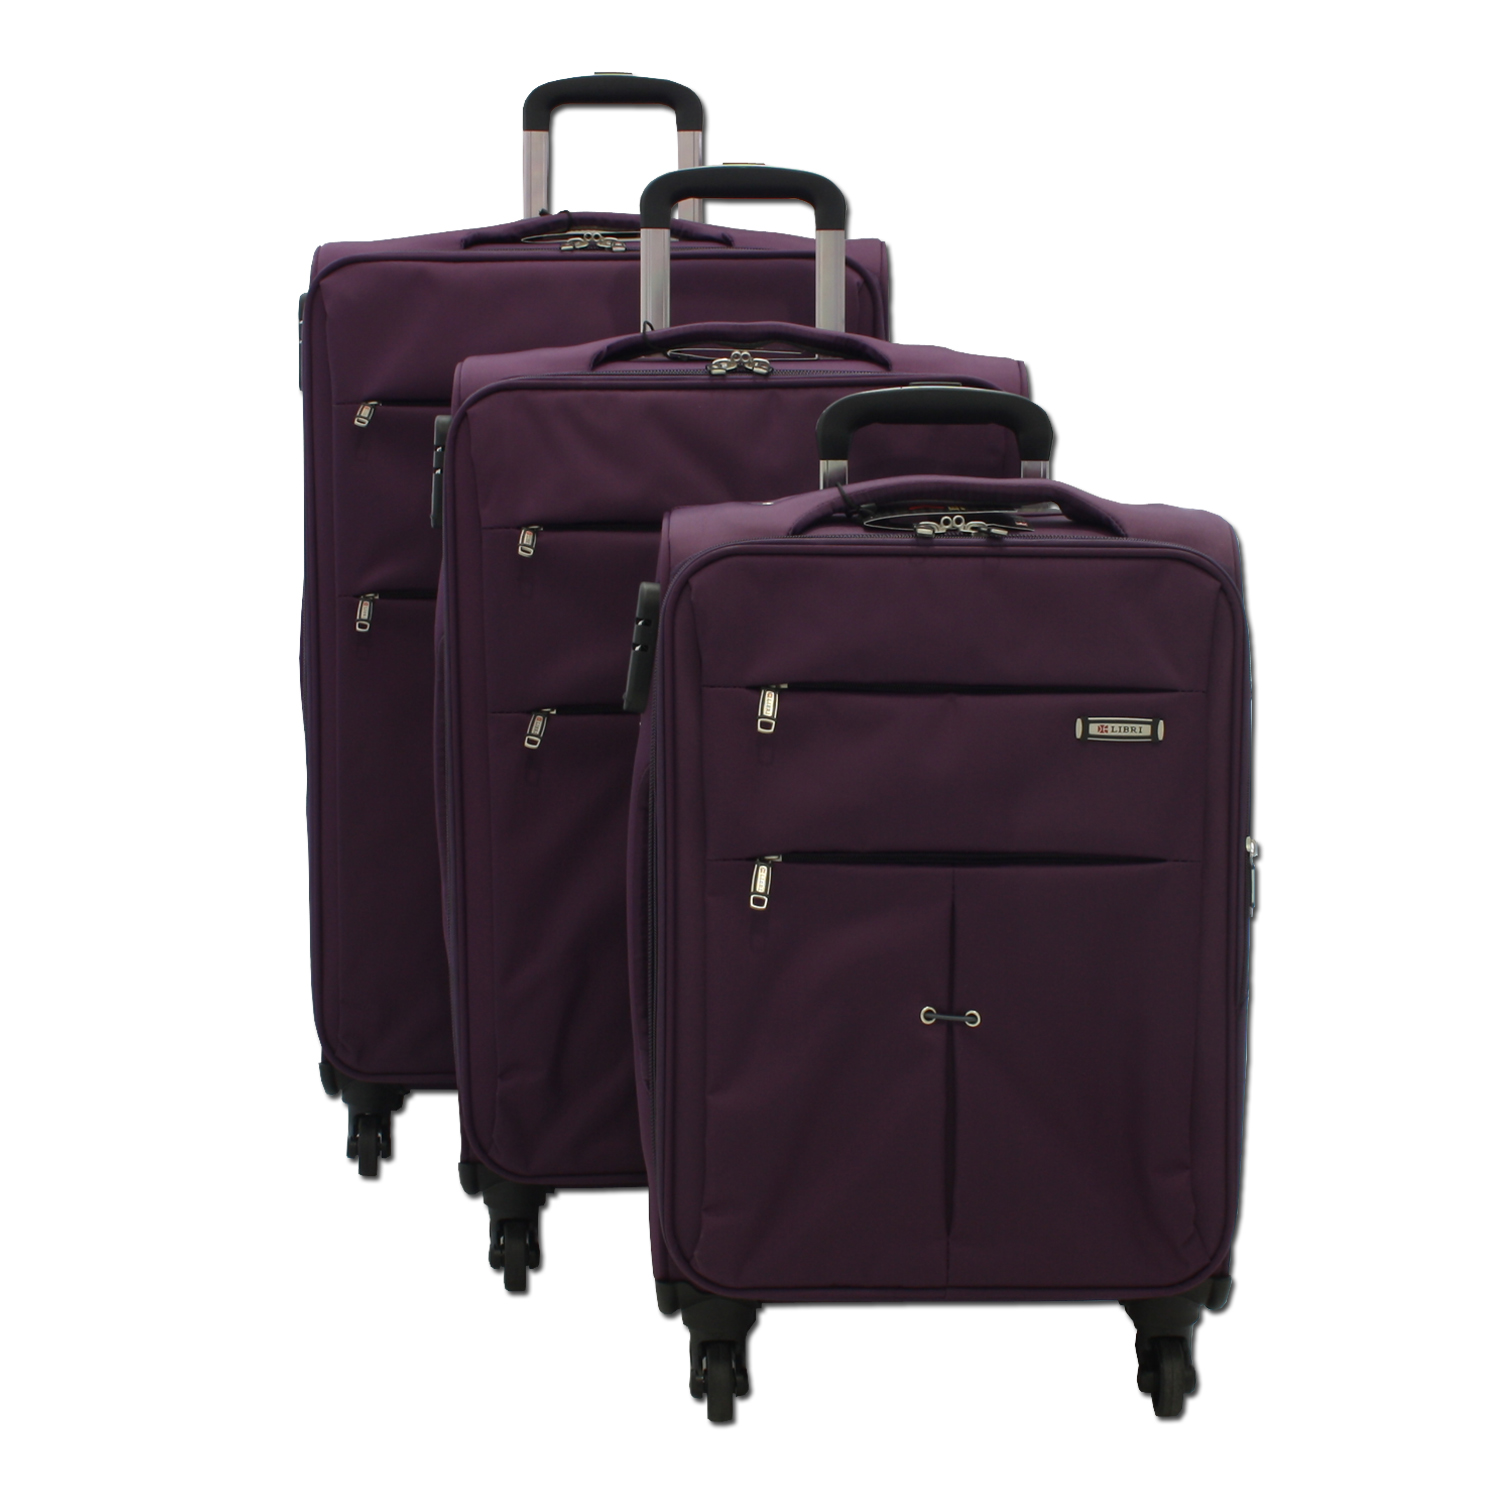 3tlg kofferset reisekoffer trolley tasche koffer reiseset. Black Bedroom Furniture Sets. Home Design Ideas